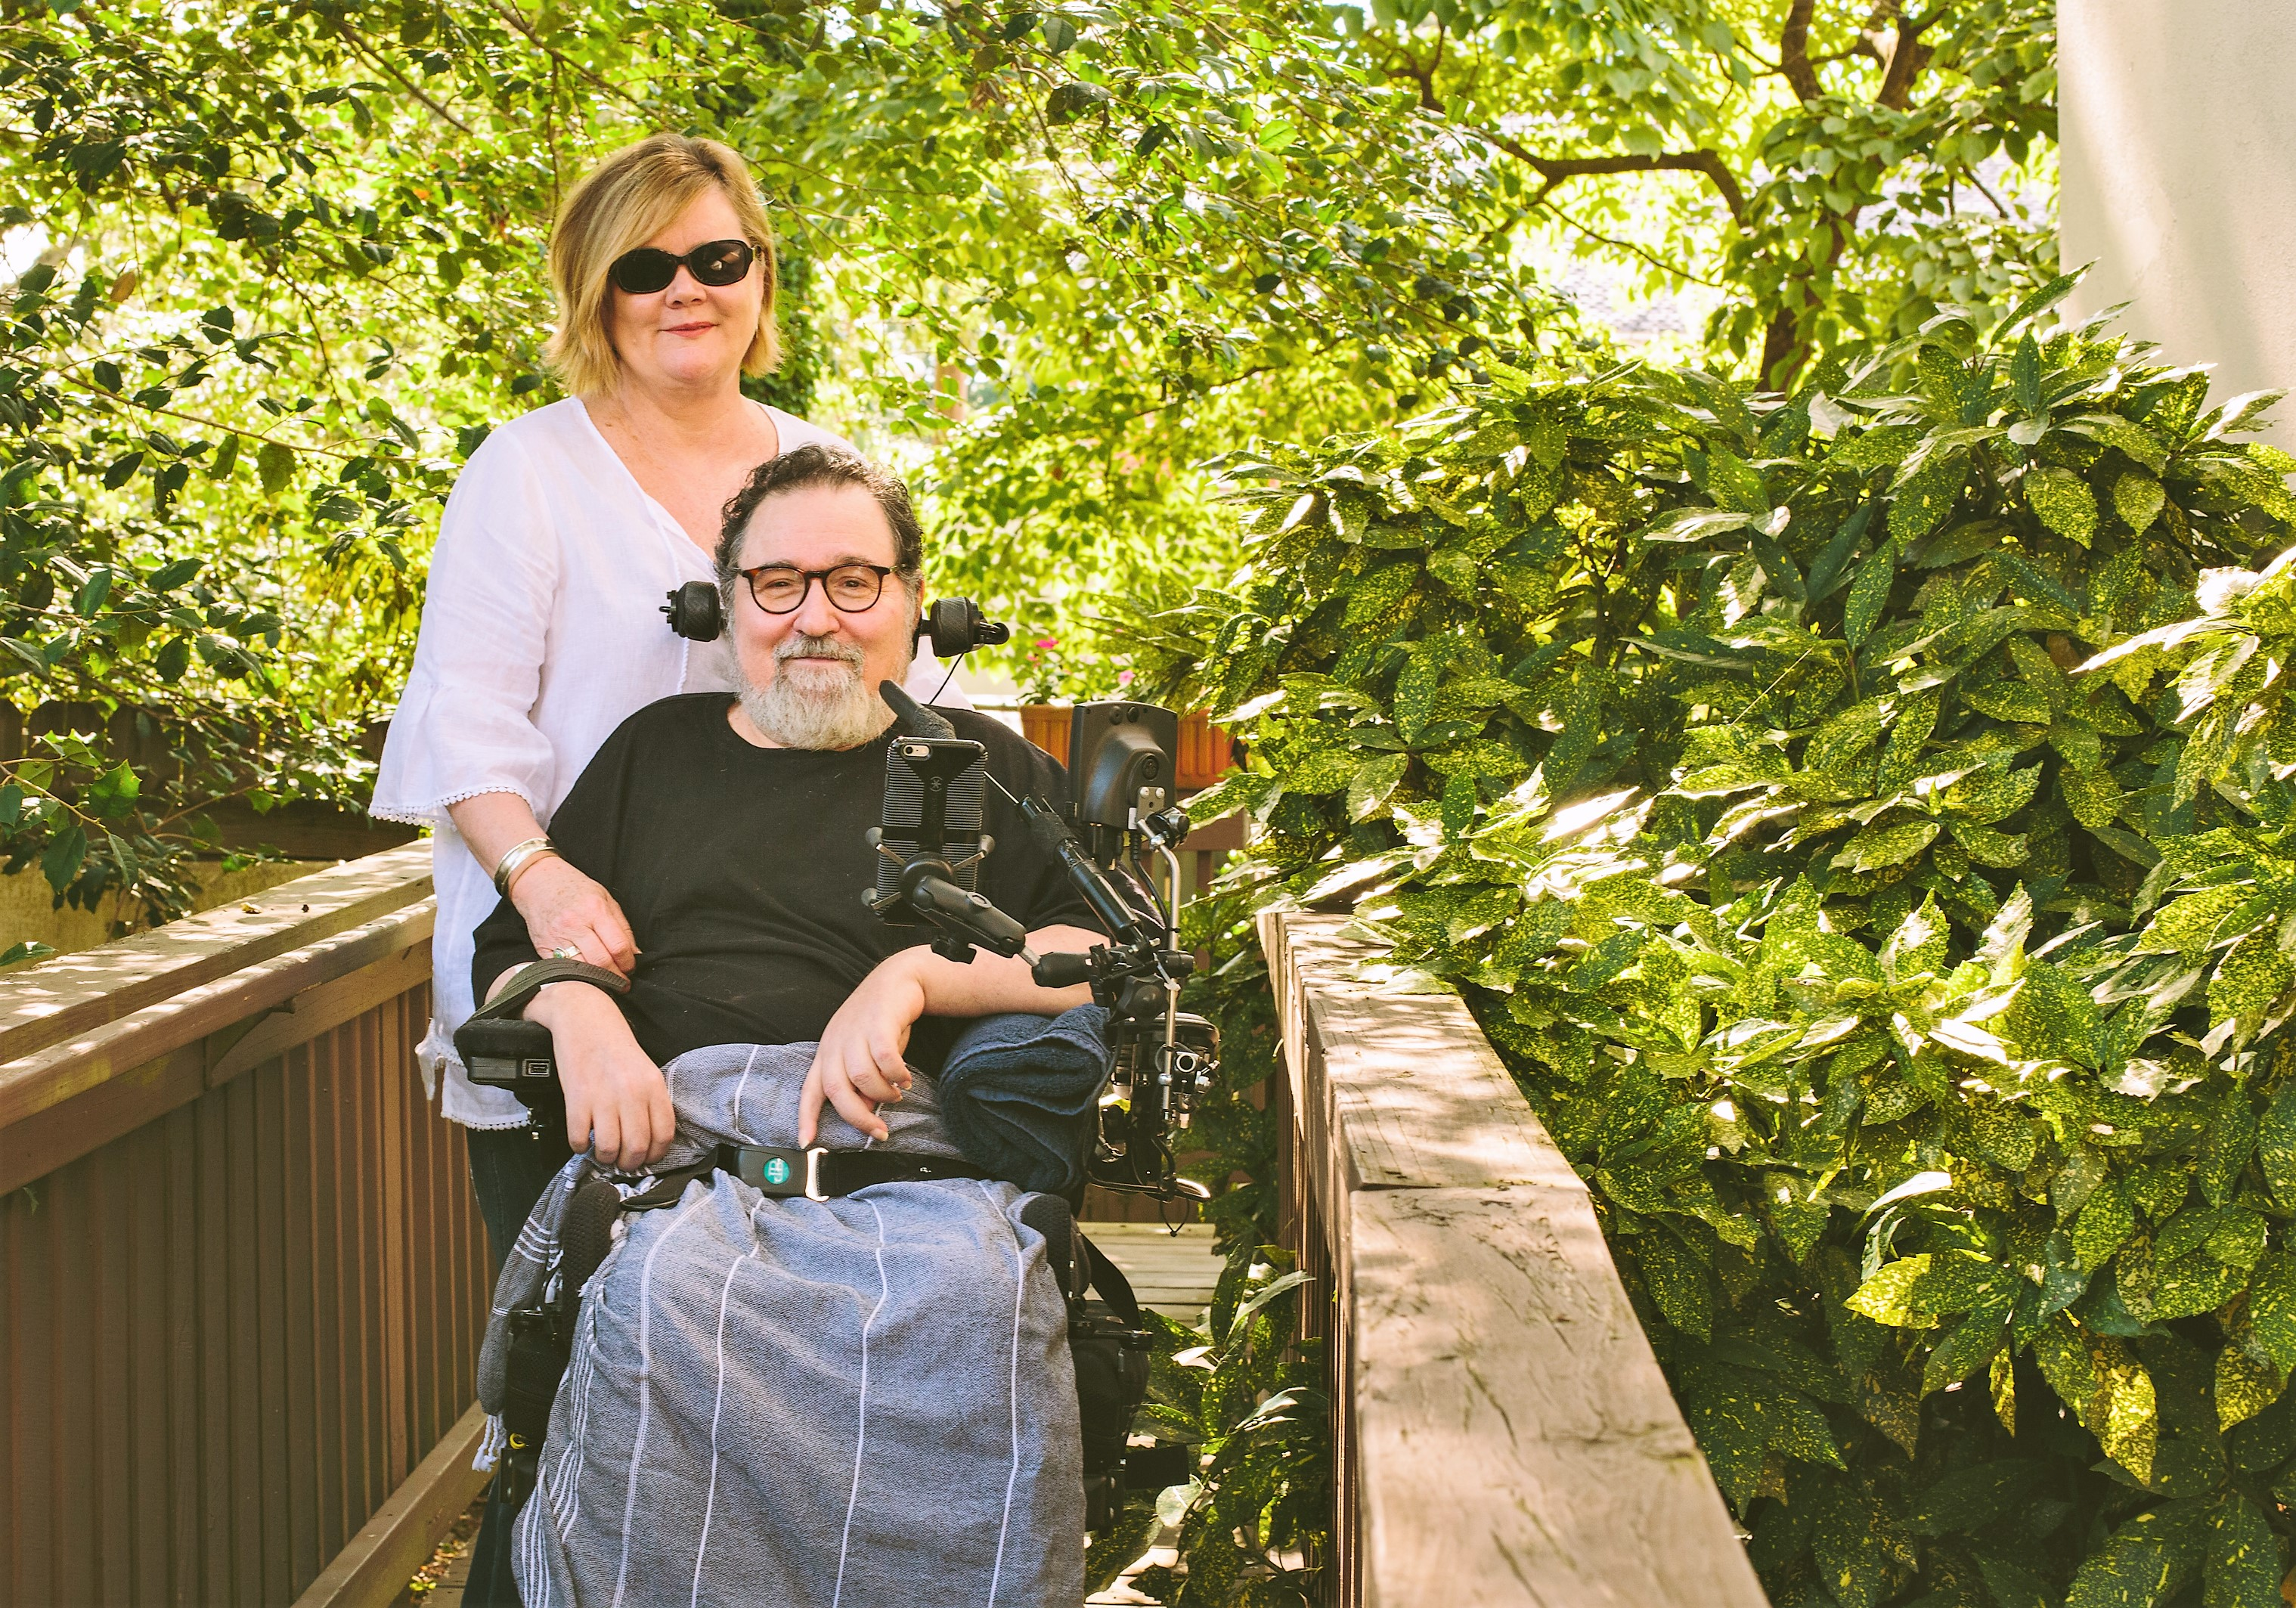 A Caregiver's Story: A loving wife caring for her husband with Multiple Sclerosis